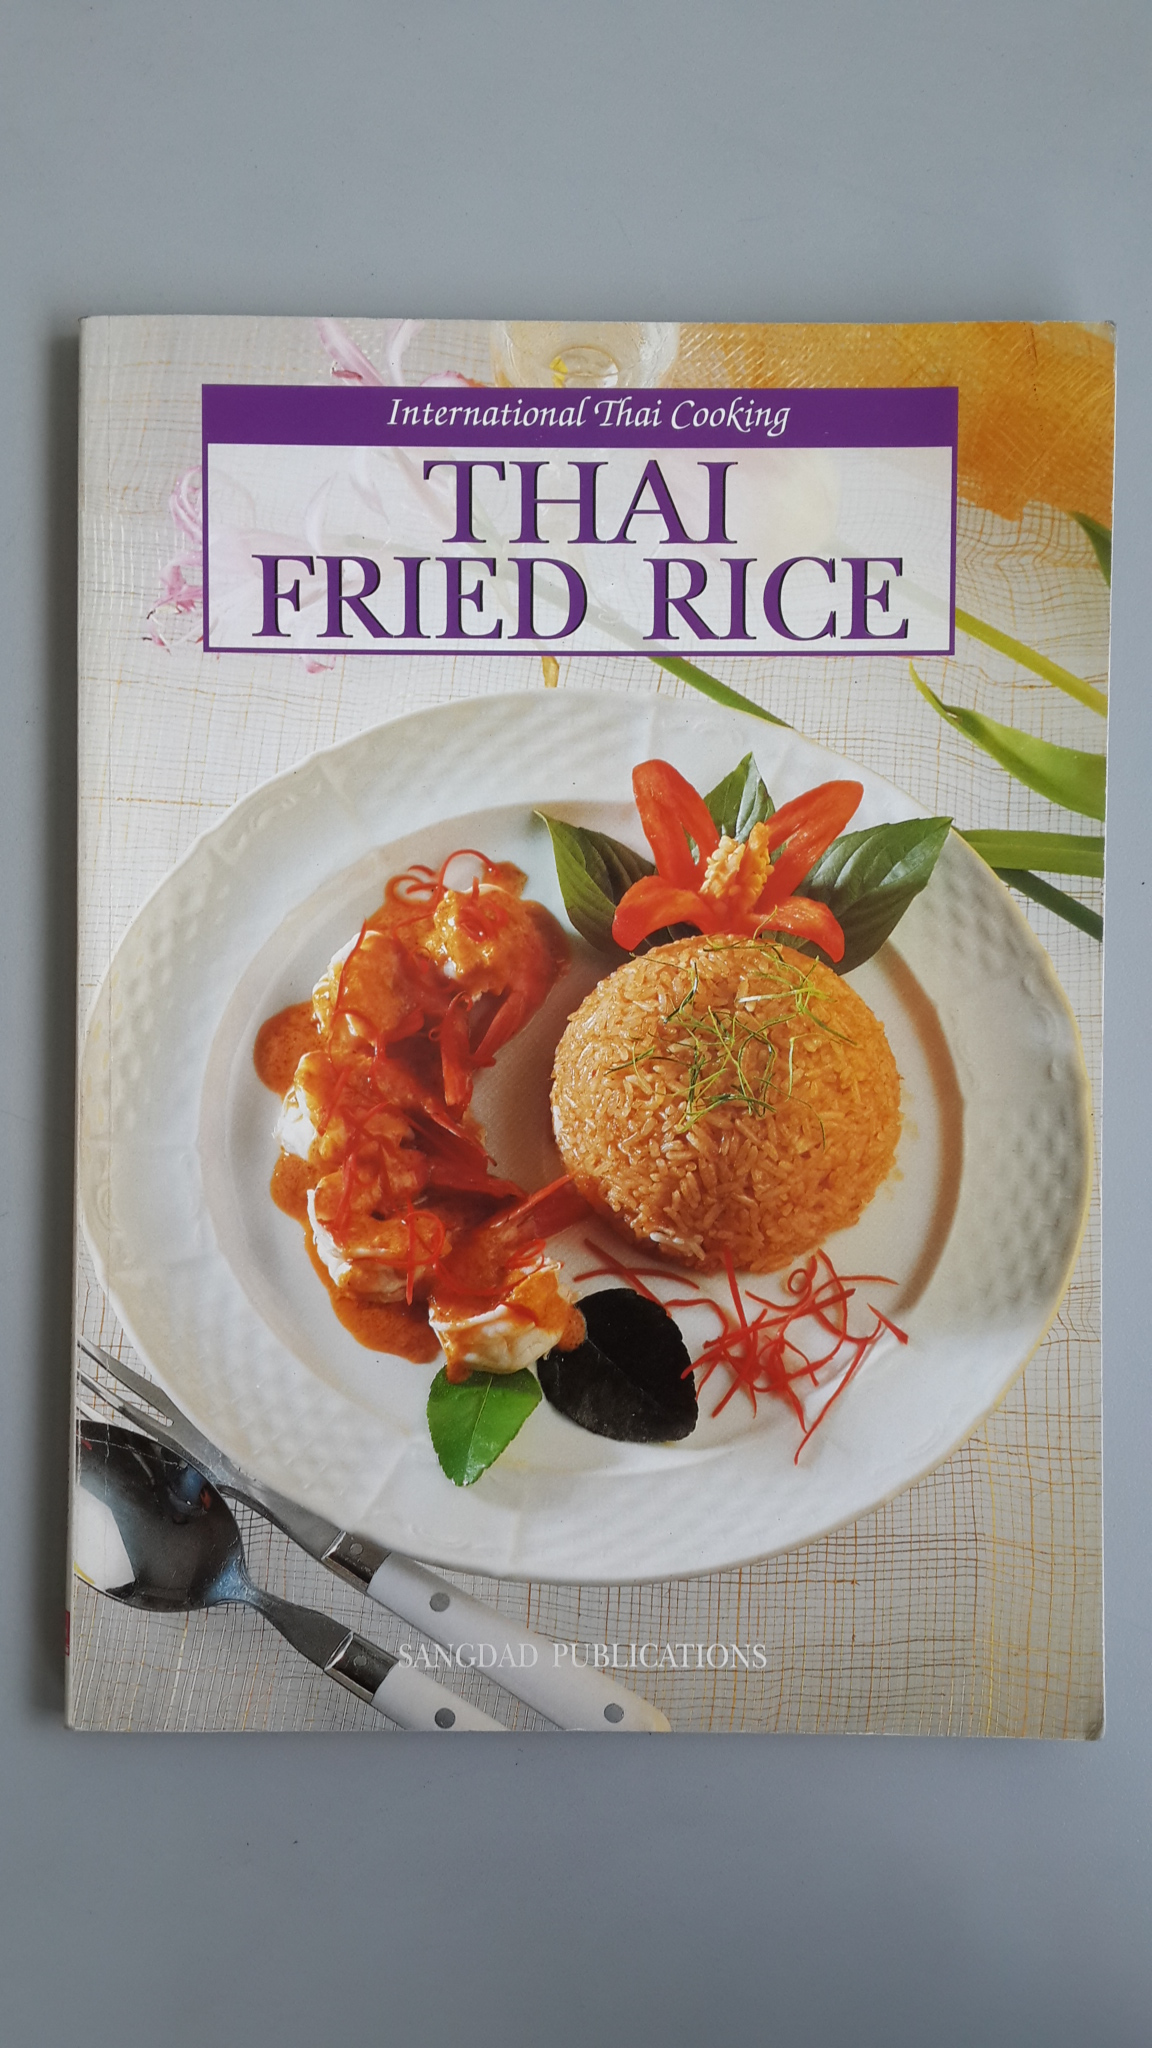 THAI FRIED RICE / SANGDAD PUBLICATIONS